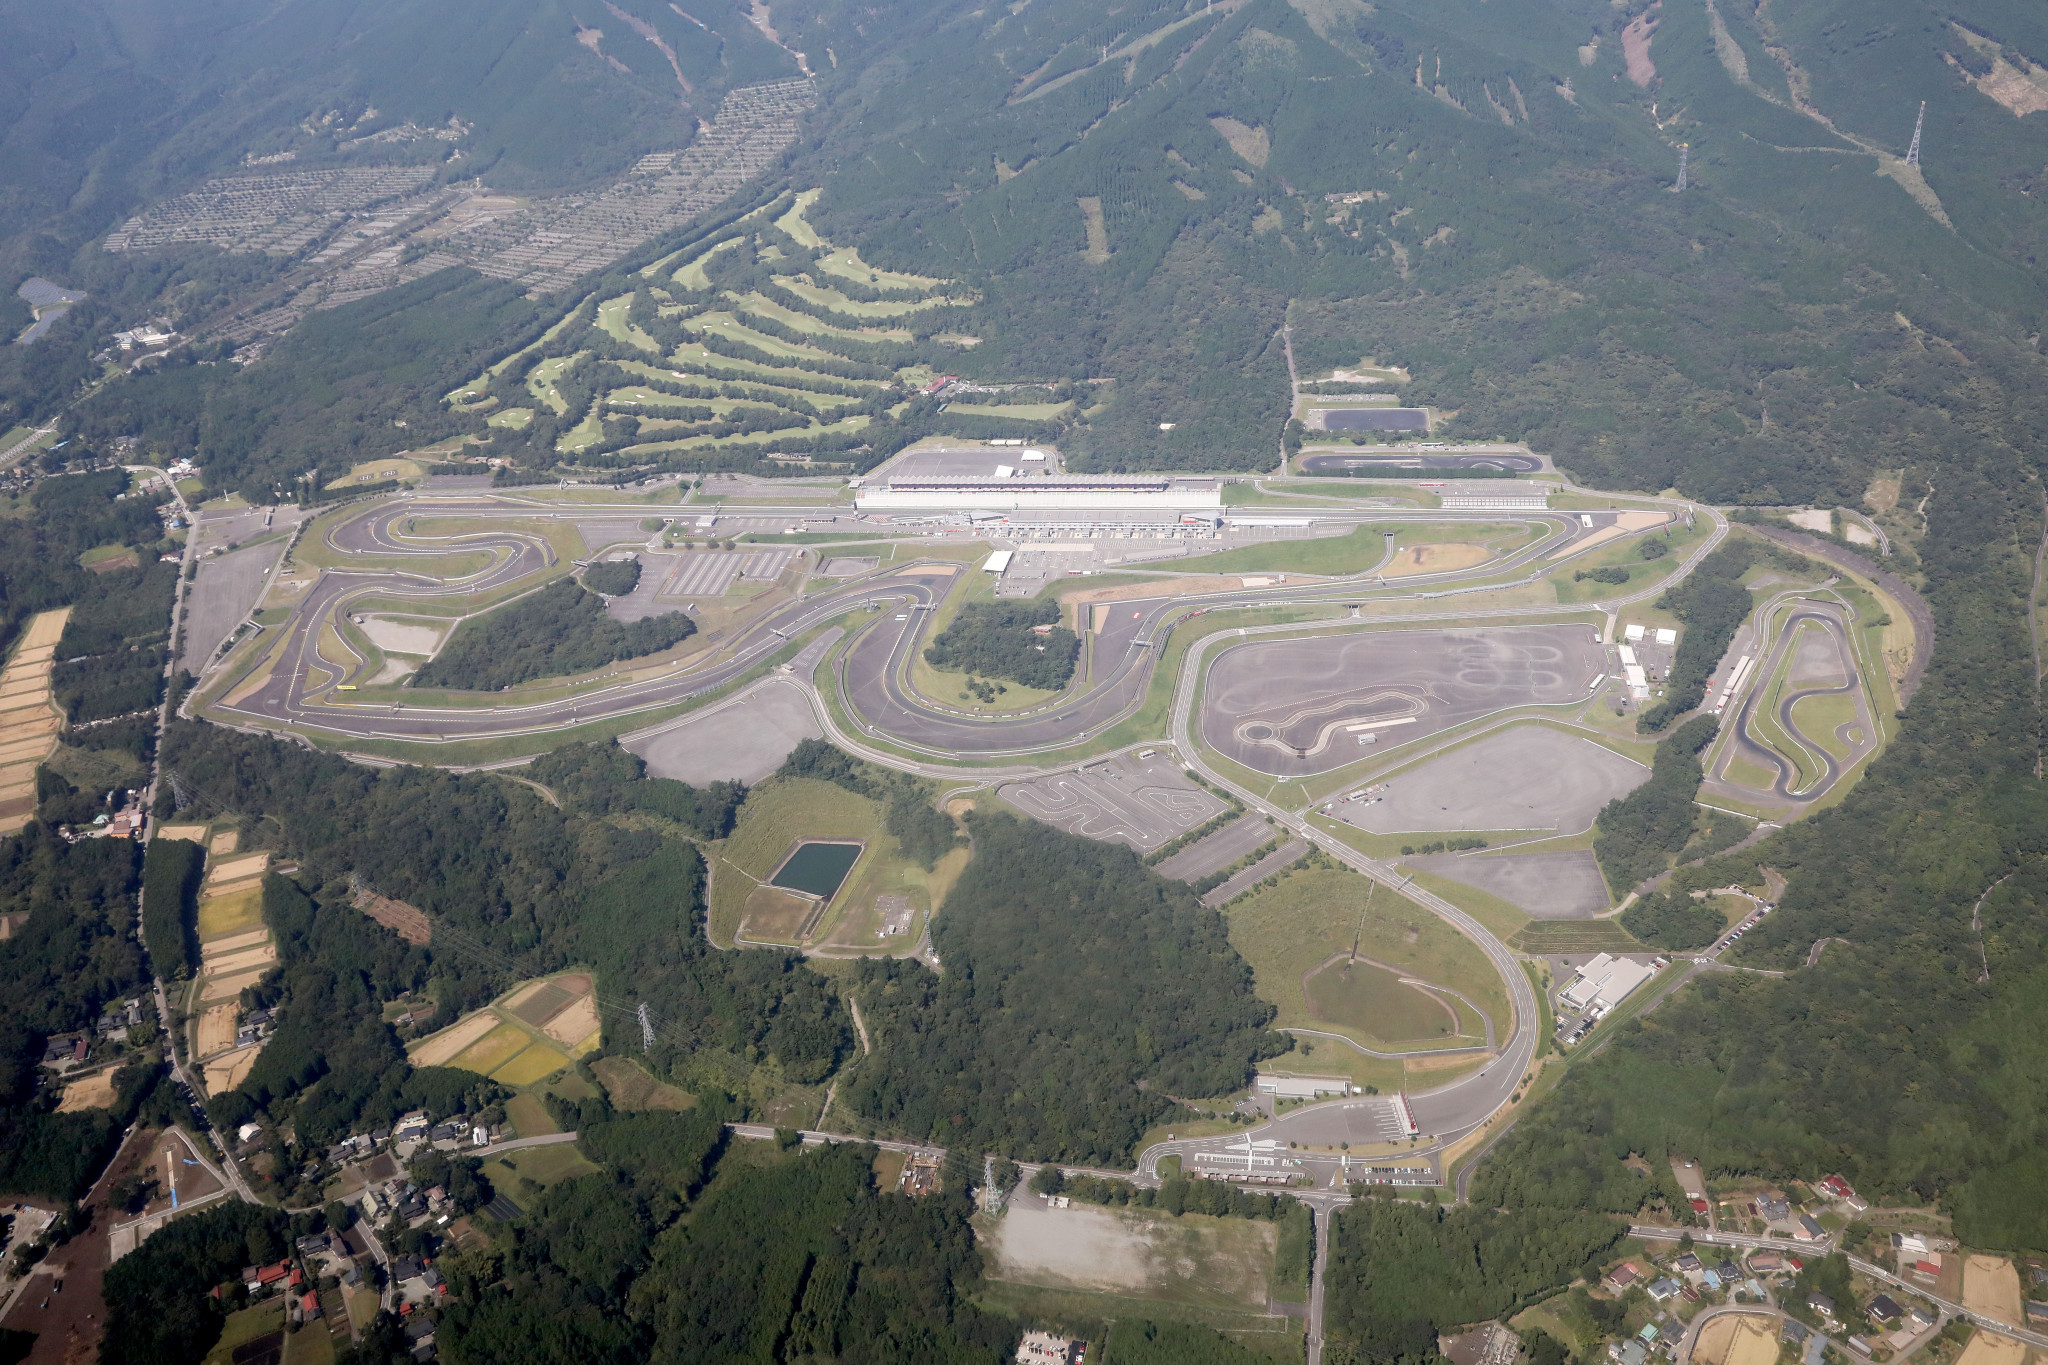 The routes for the Tokyo 2020 Olympic cycling individual time trial event and the Paralympic cycling road race, individual time trial and team relay events will start and end at the Fuji Speedway motor racing circuit ©Tokyo 2020